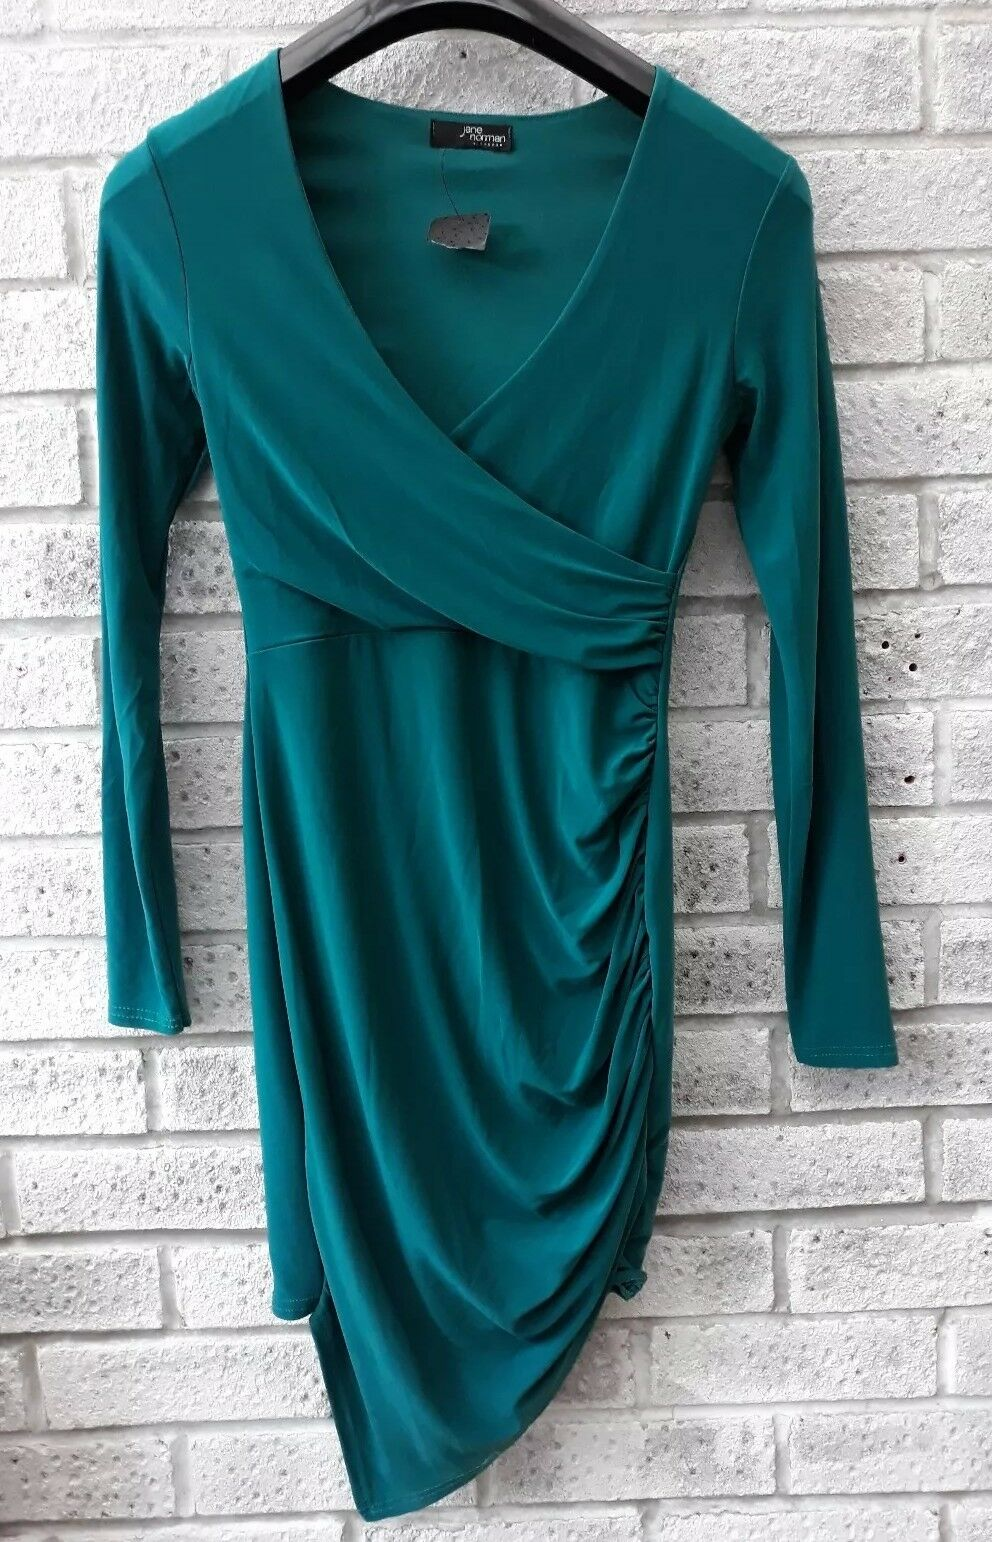 JANE NORMAN WRAP DRESS GREEN NEW -RRP  ON TREND PARTY OCCASION SIZE 8.